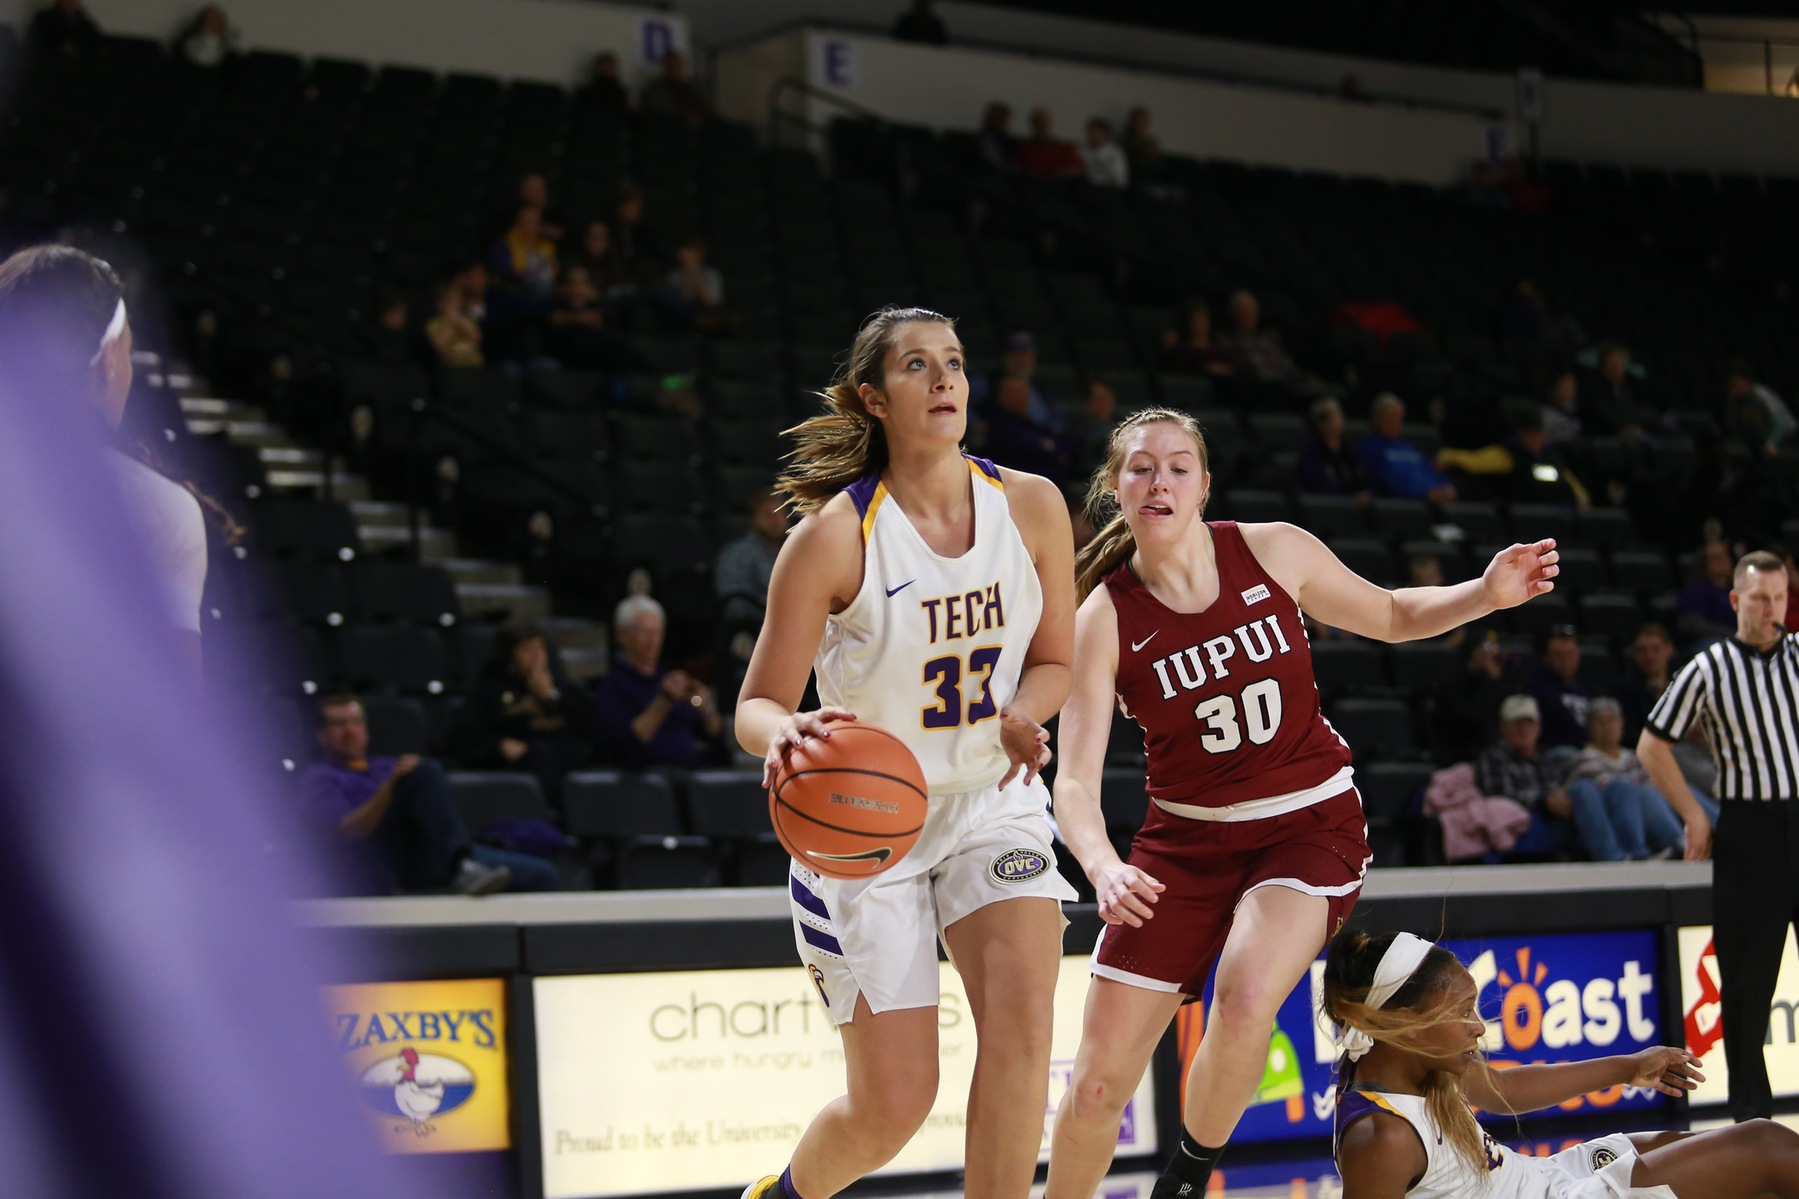 Turnovers hurt Tech in loss to IUPUI